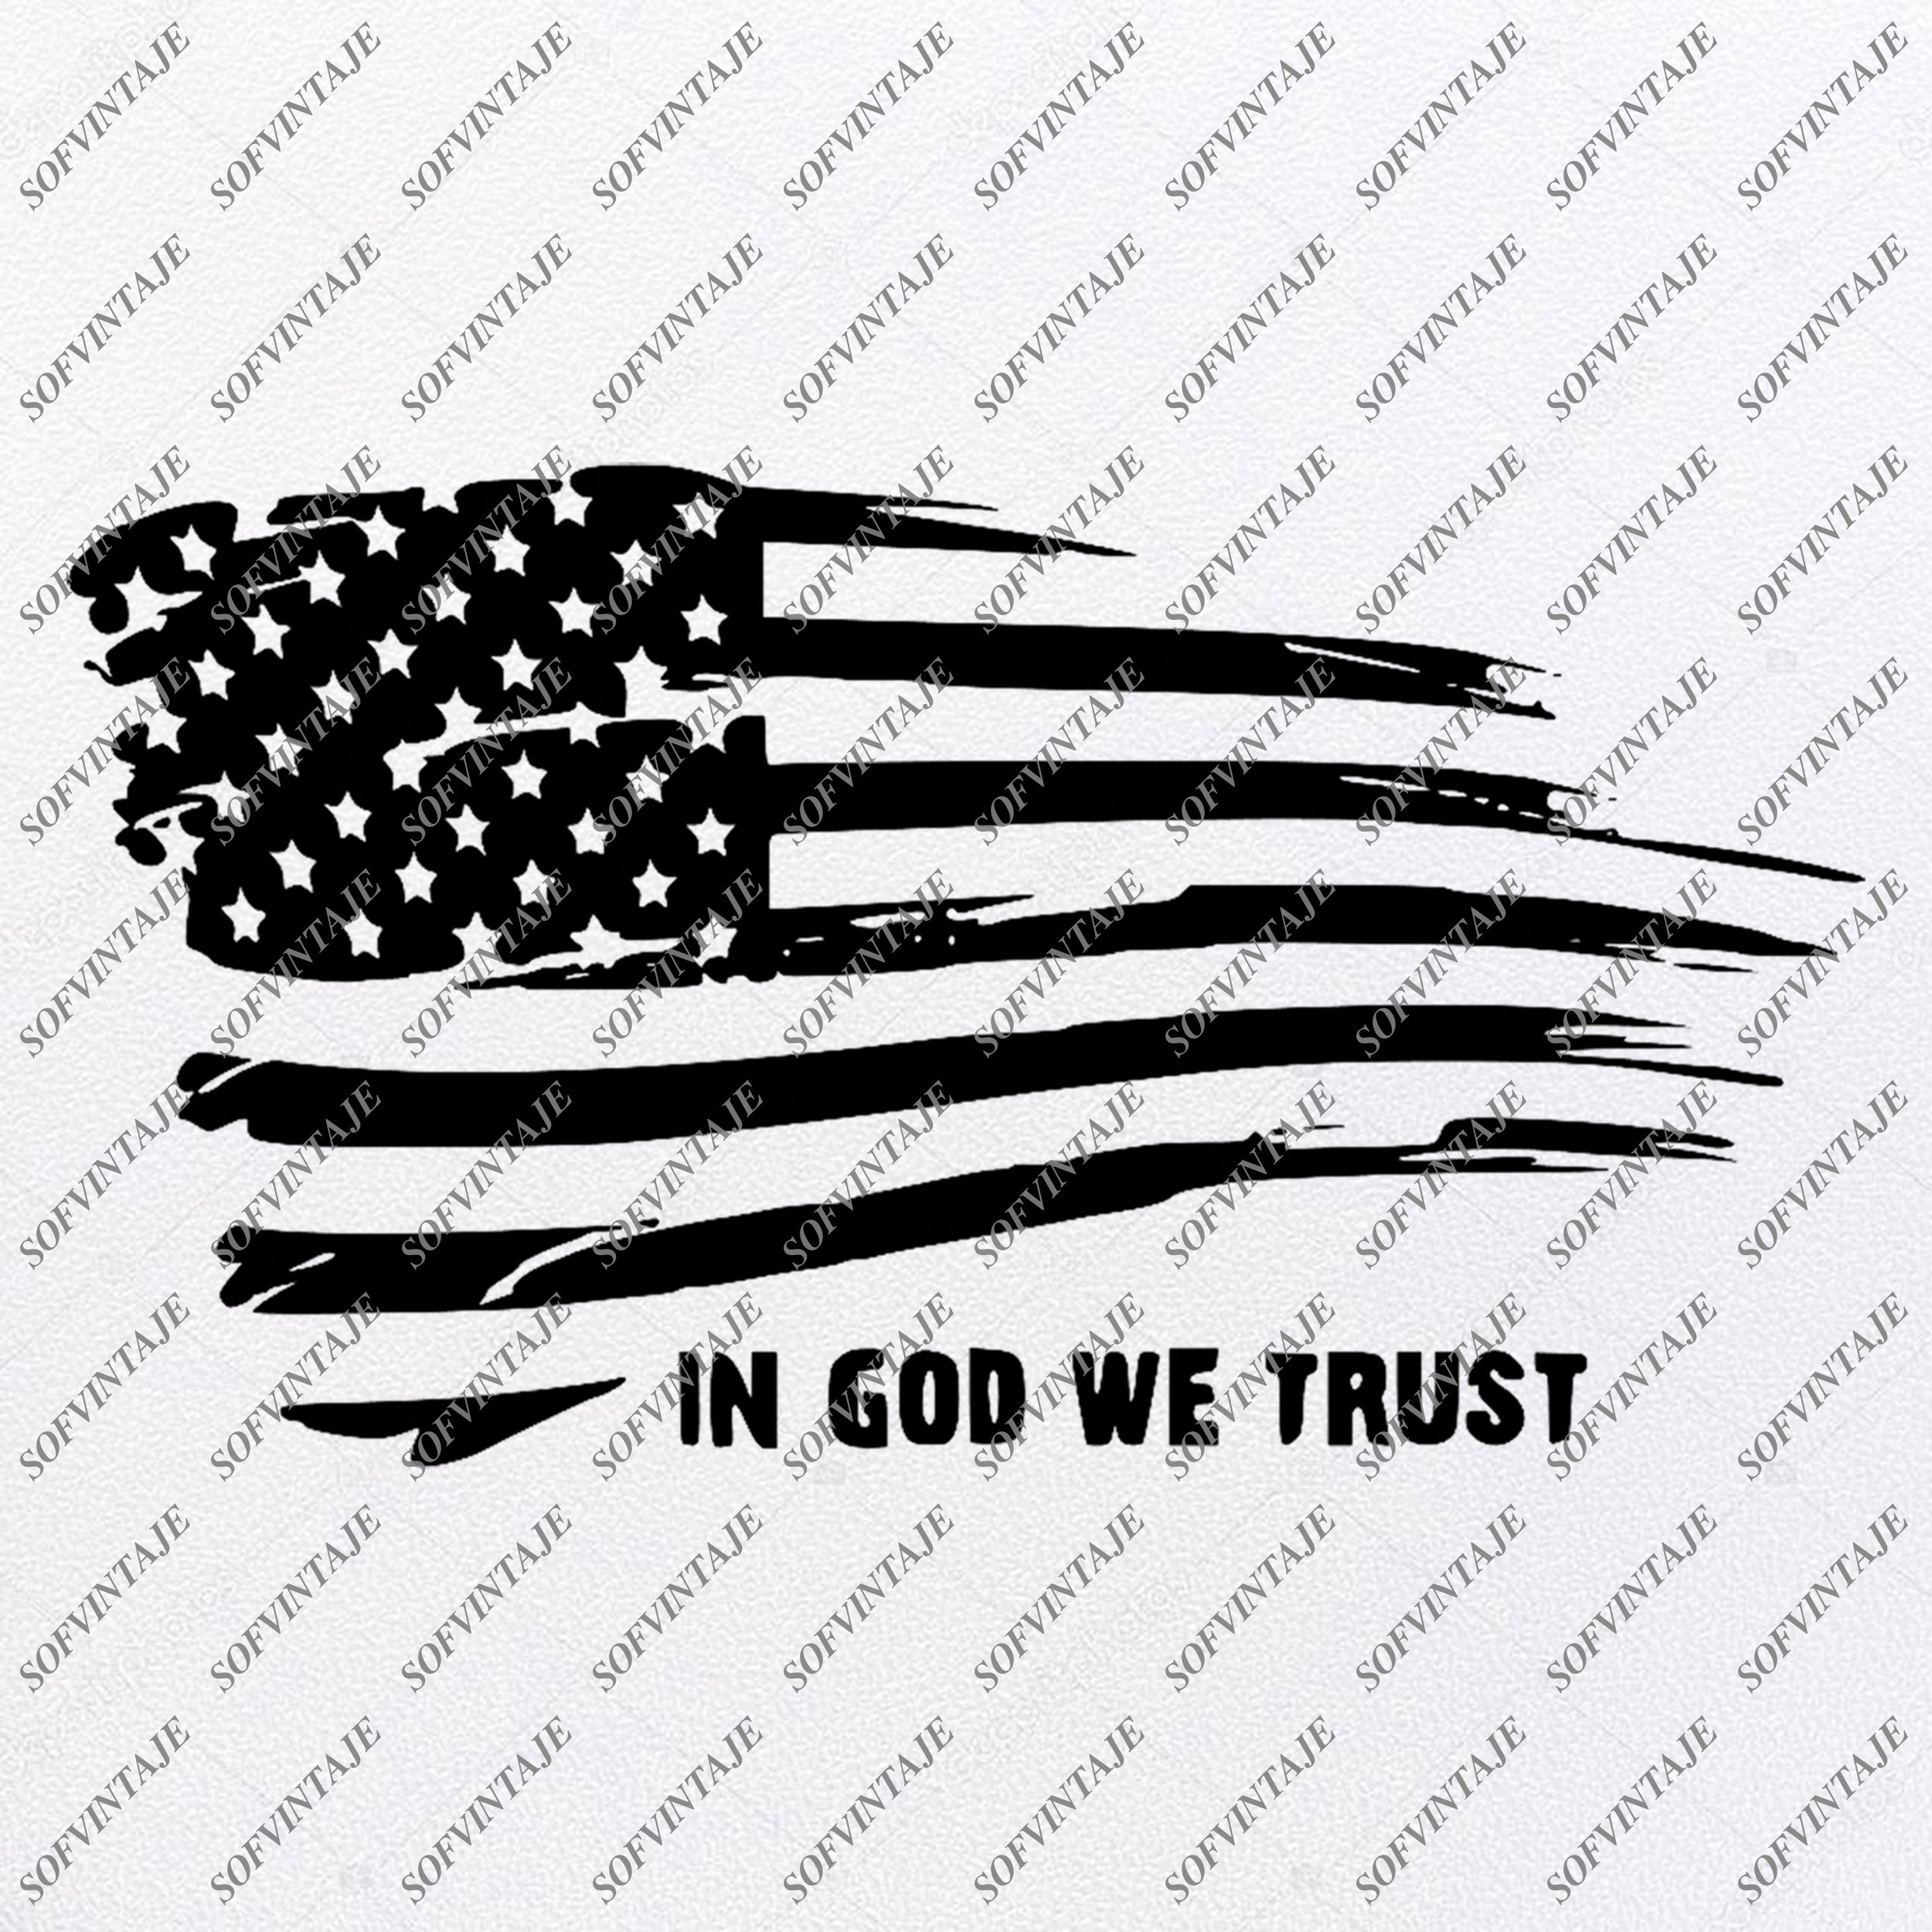 Pin by Debbie Caruthers on svg | American flag clip art, Black and white  flag, Black and white